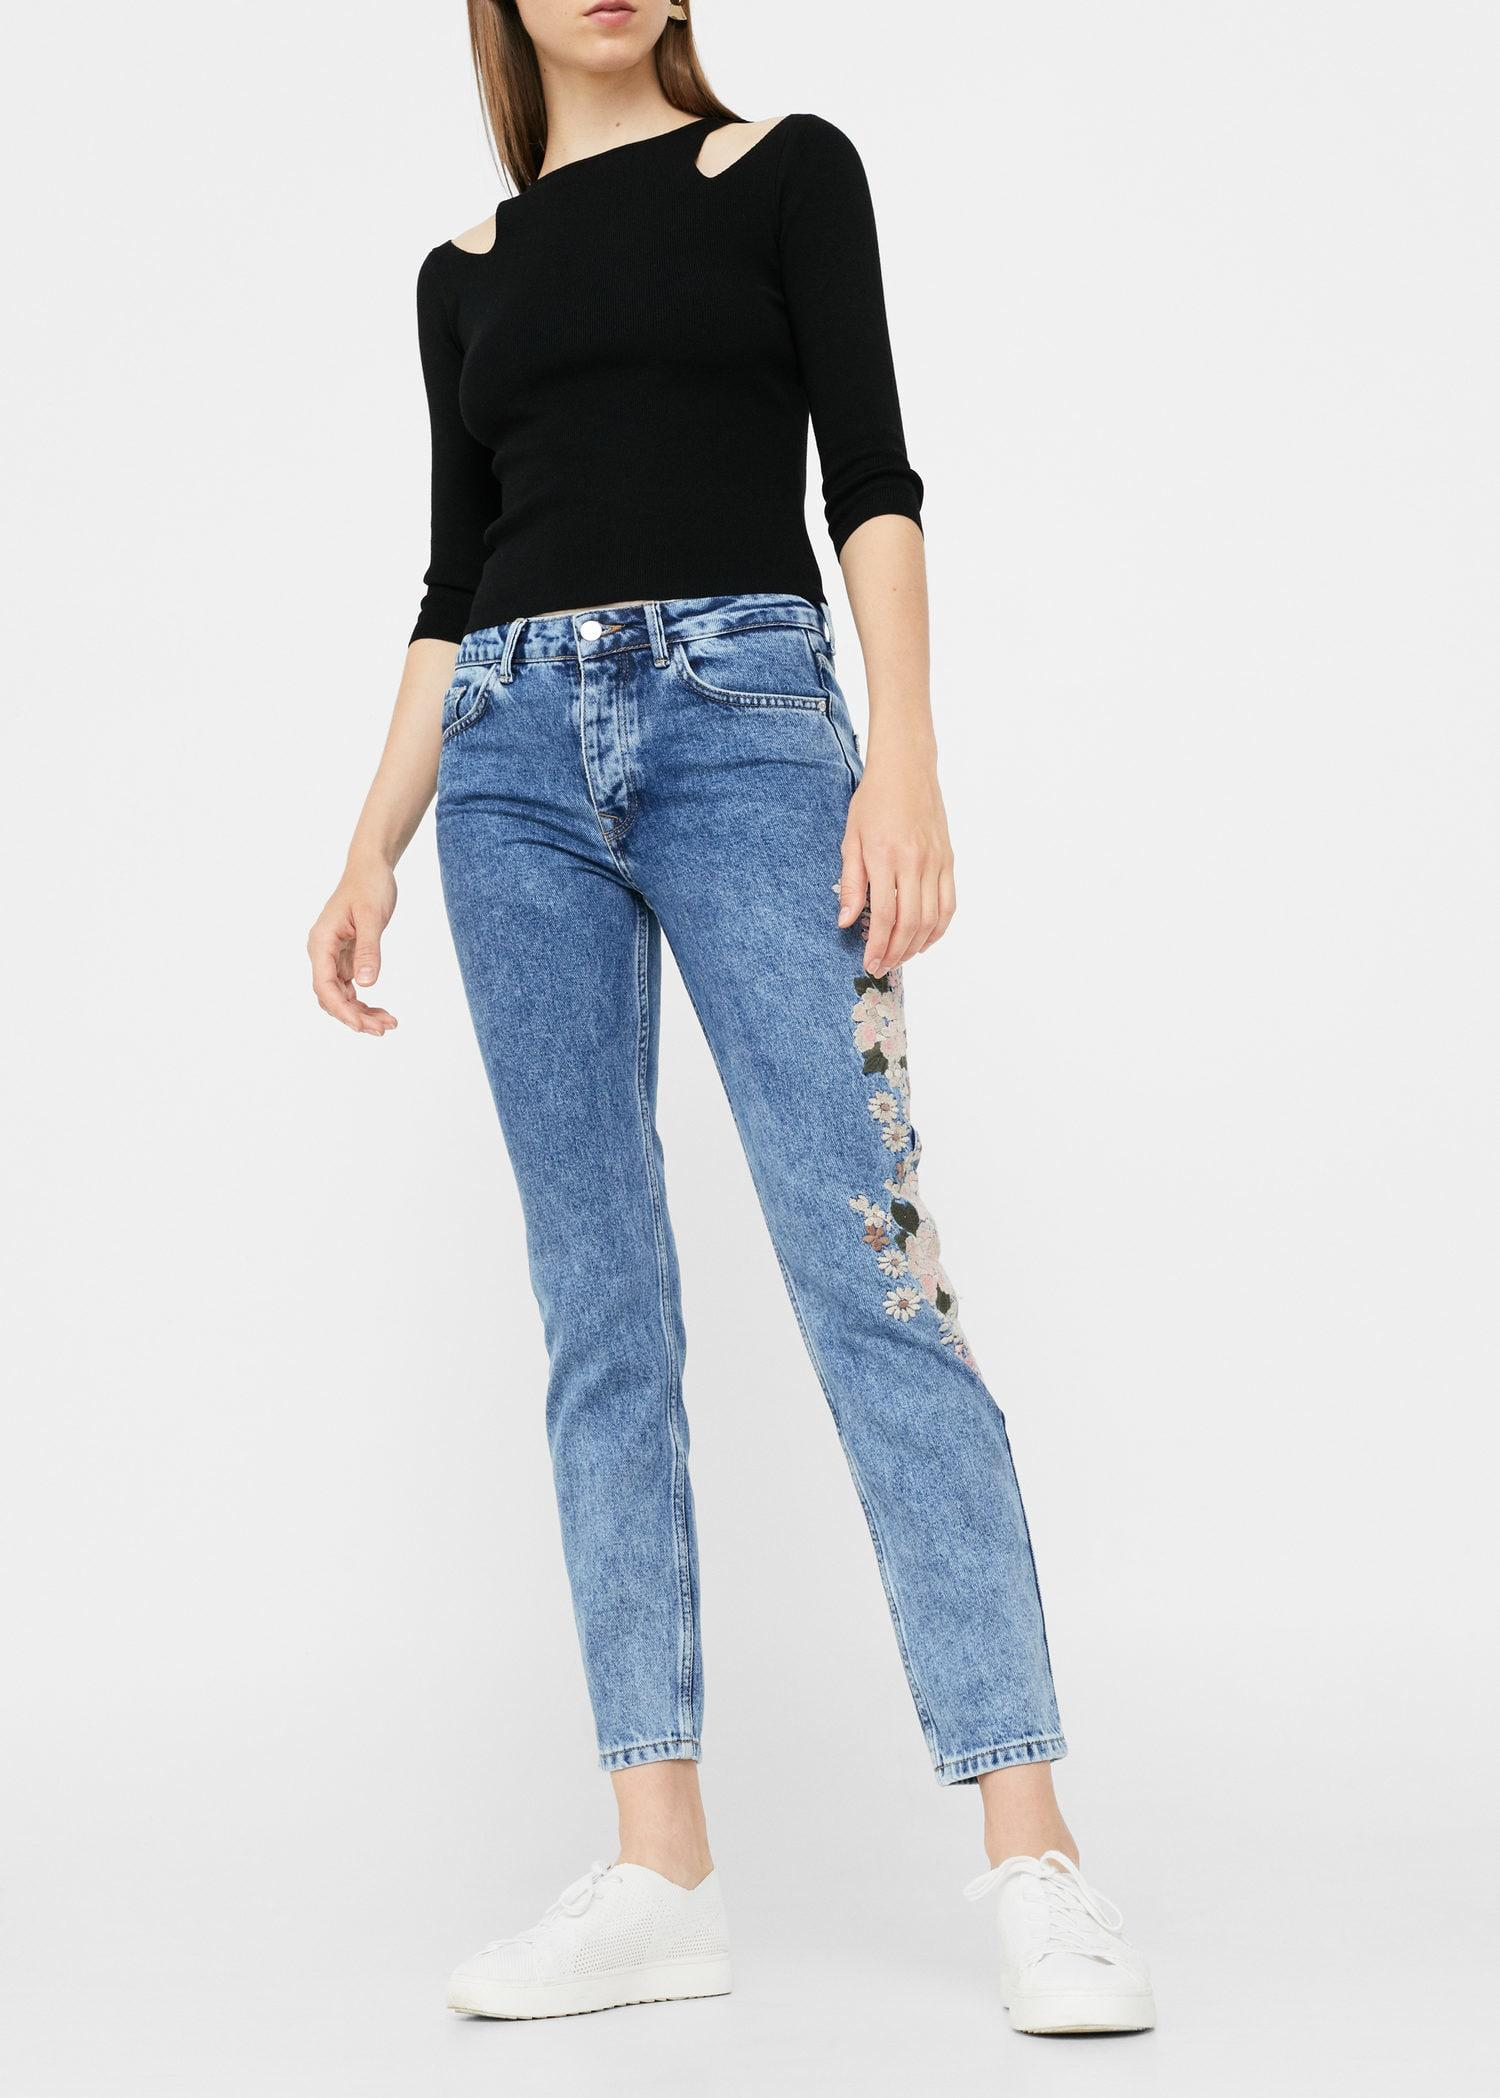 Mango Embroidered Relaxed Spring Jeans in Blue